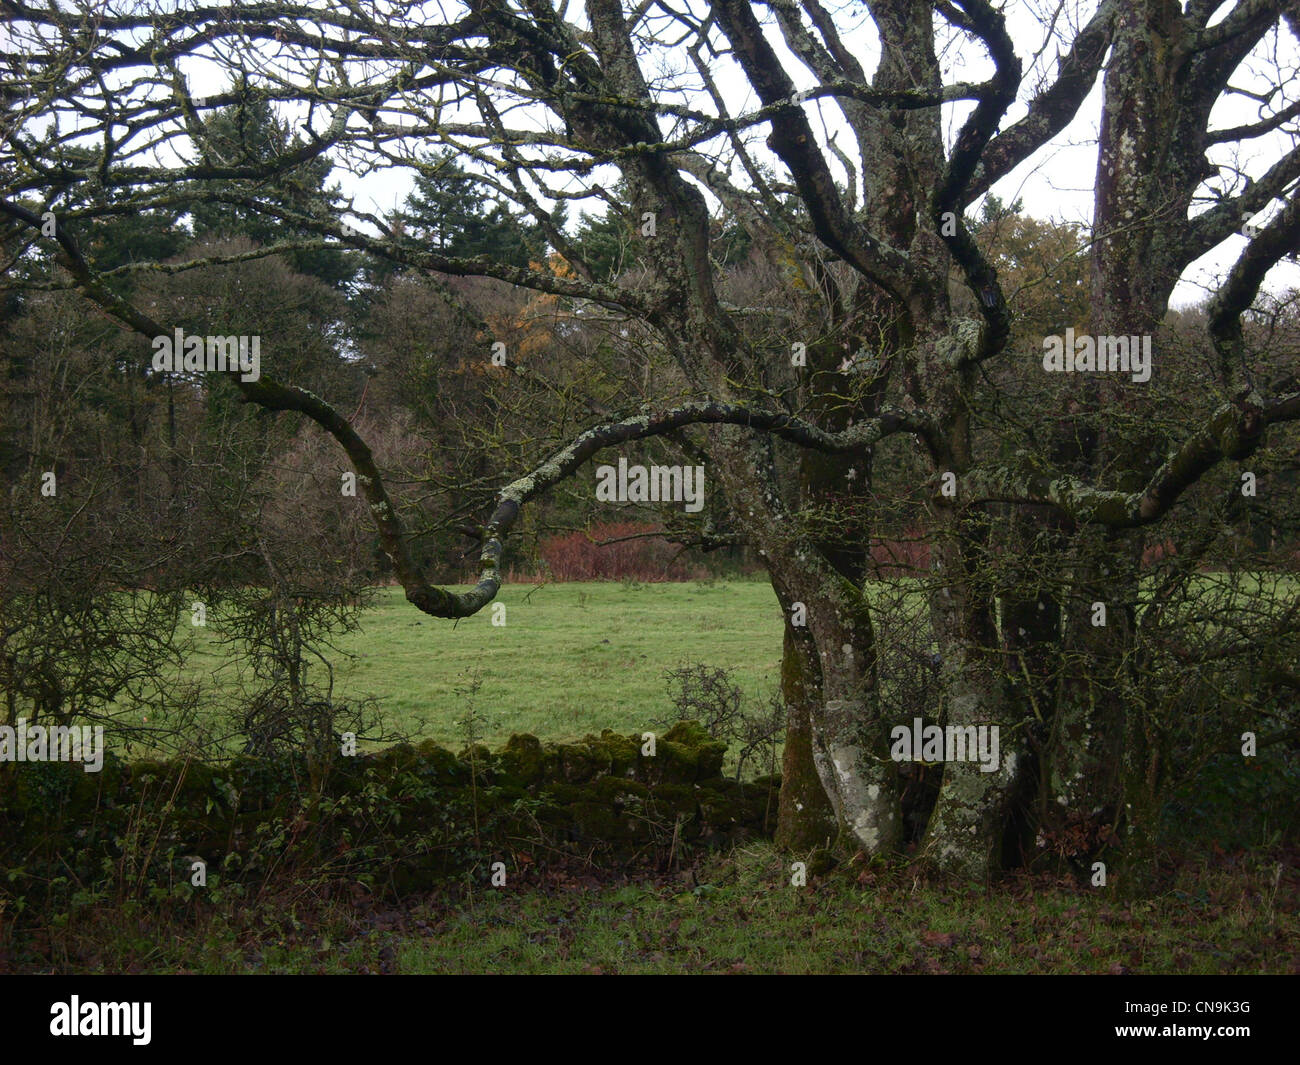 obscure branch - Stock Image